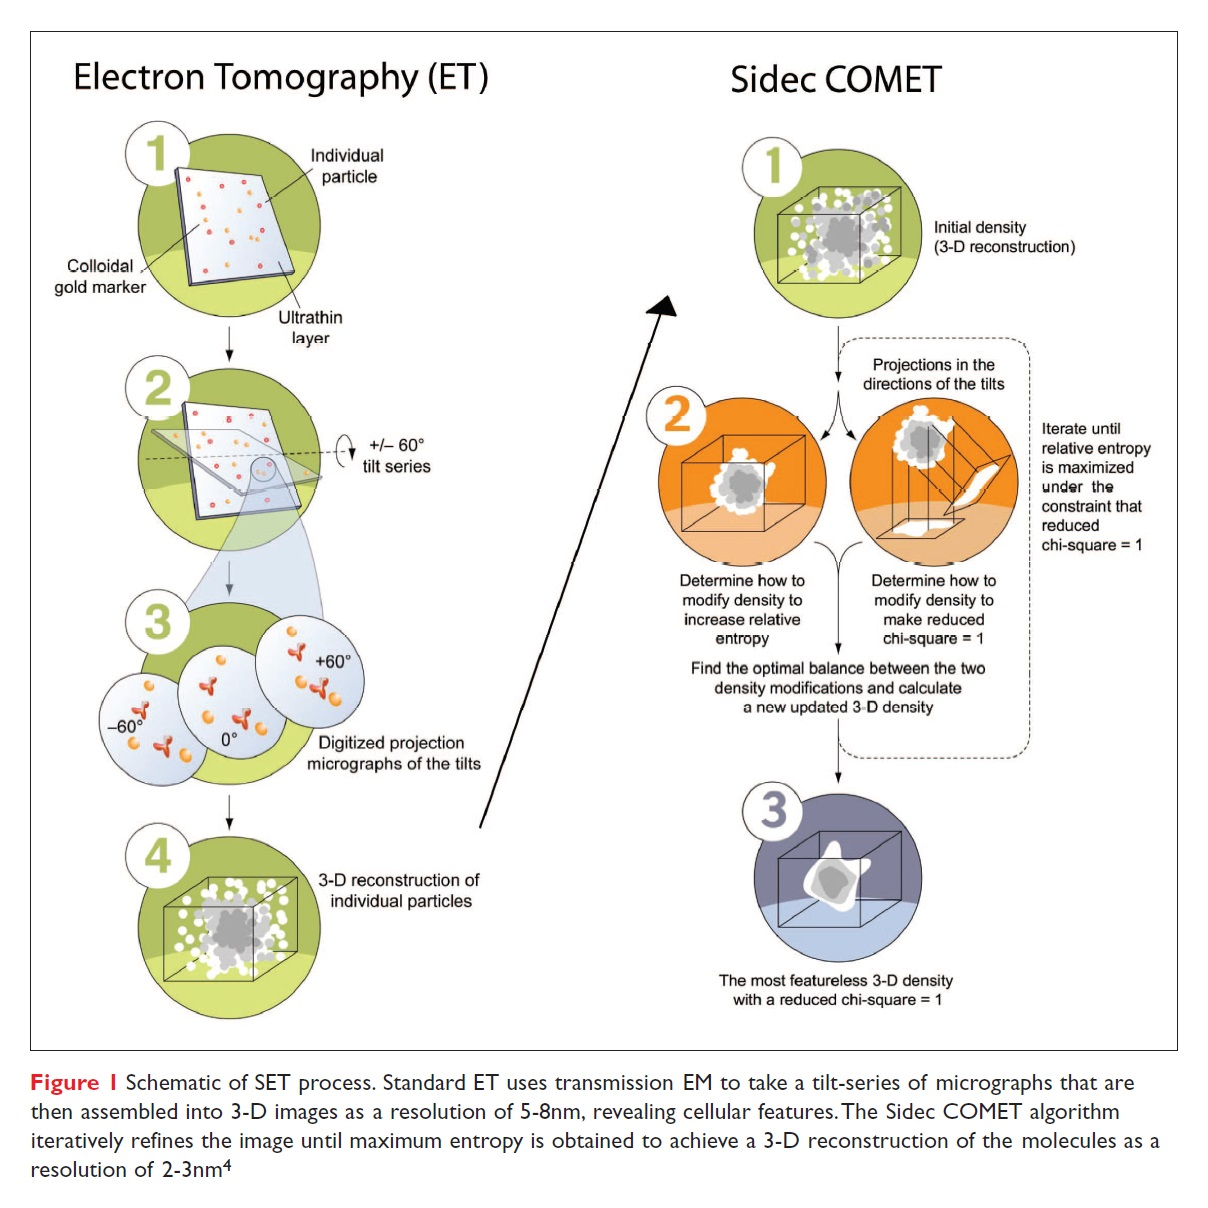 Figure 1 Schematic of SET process, Electron Tomography and Sidec COMET